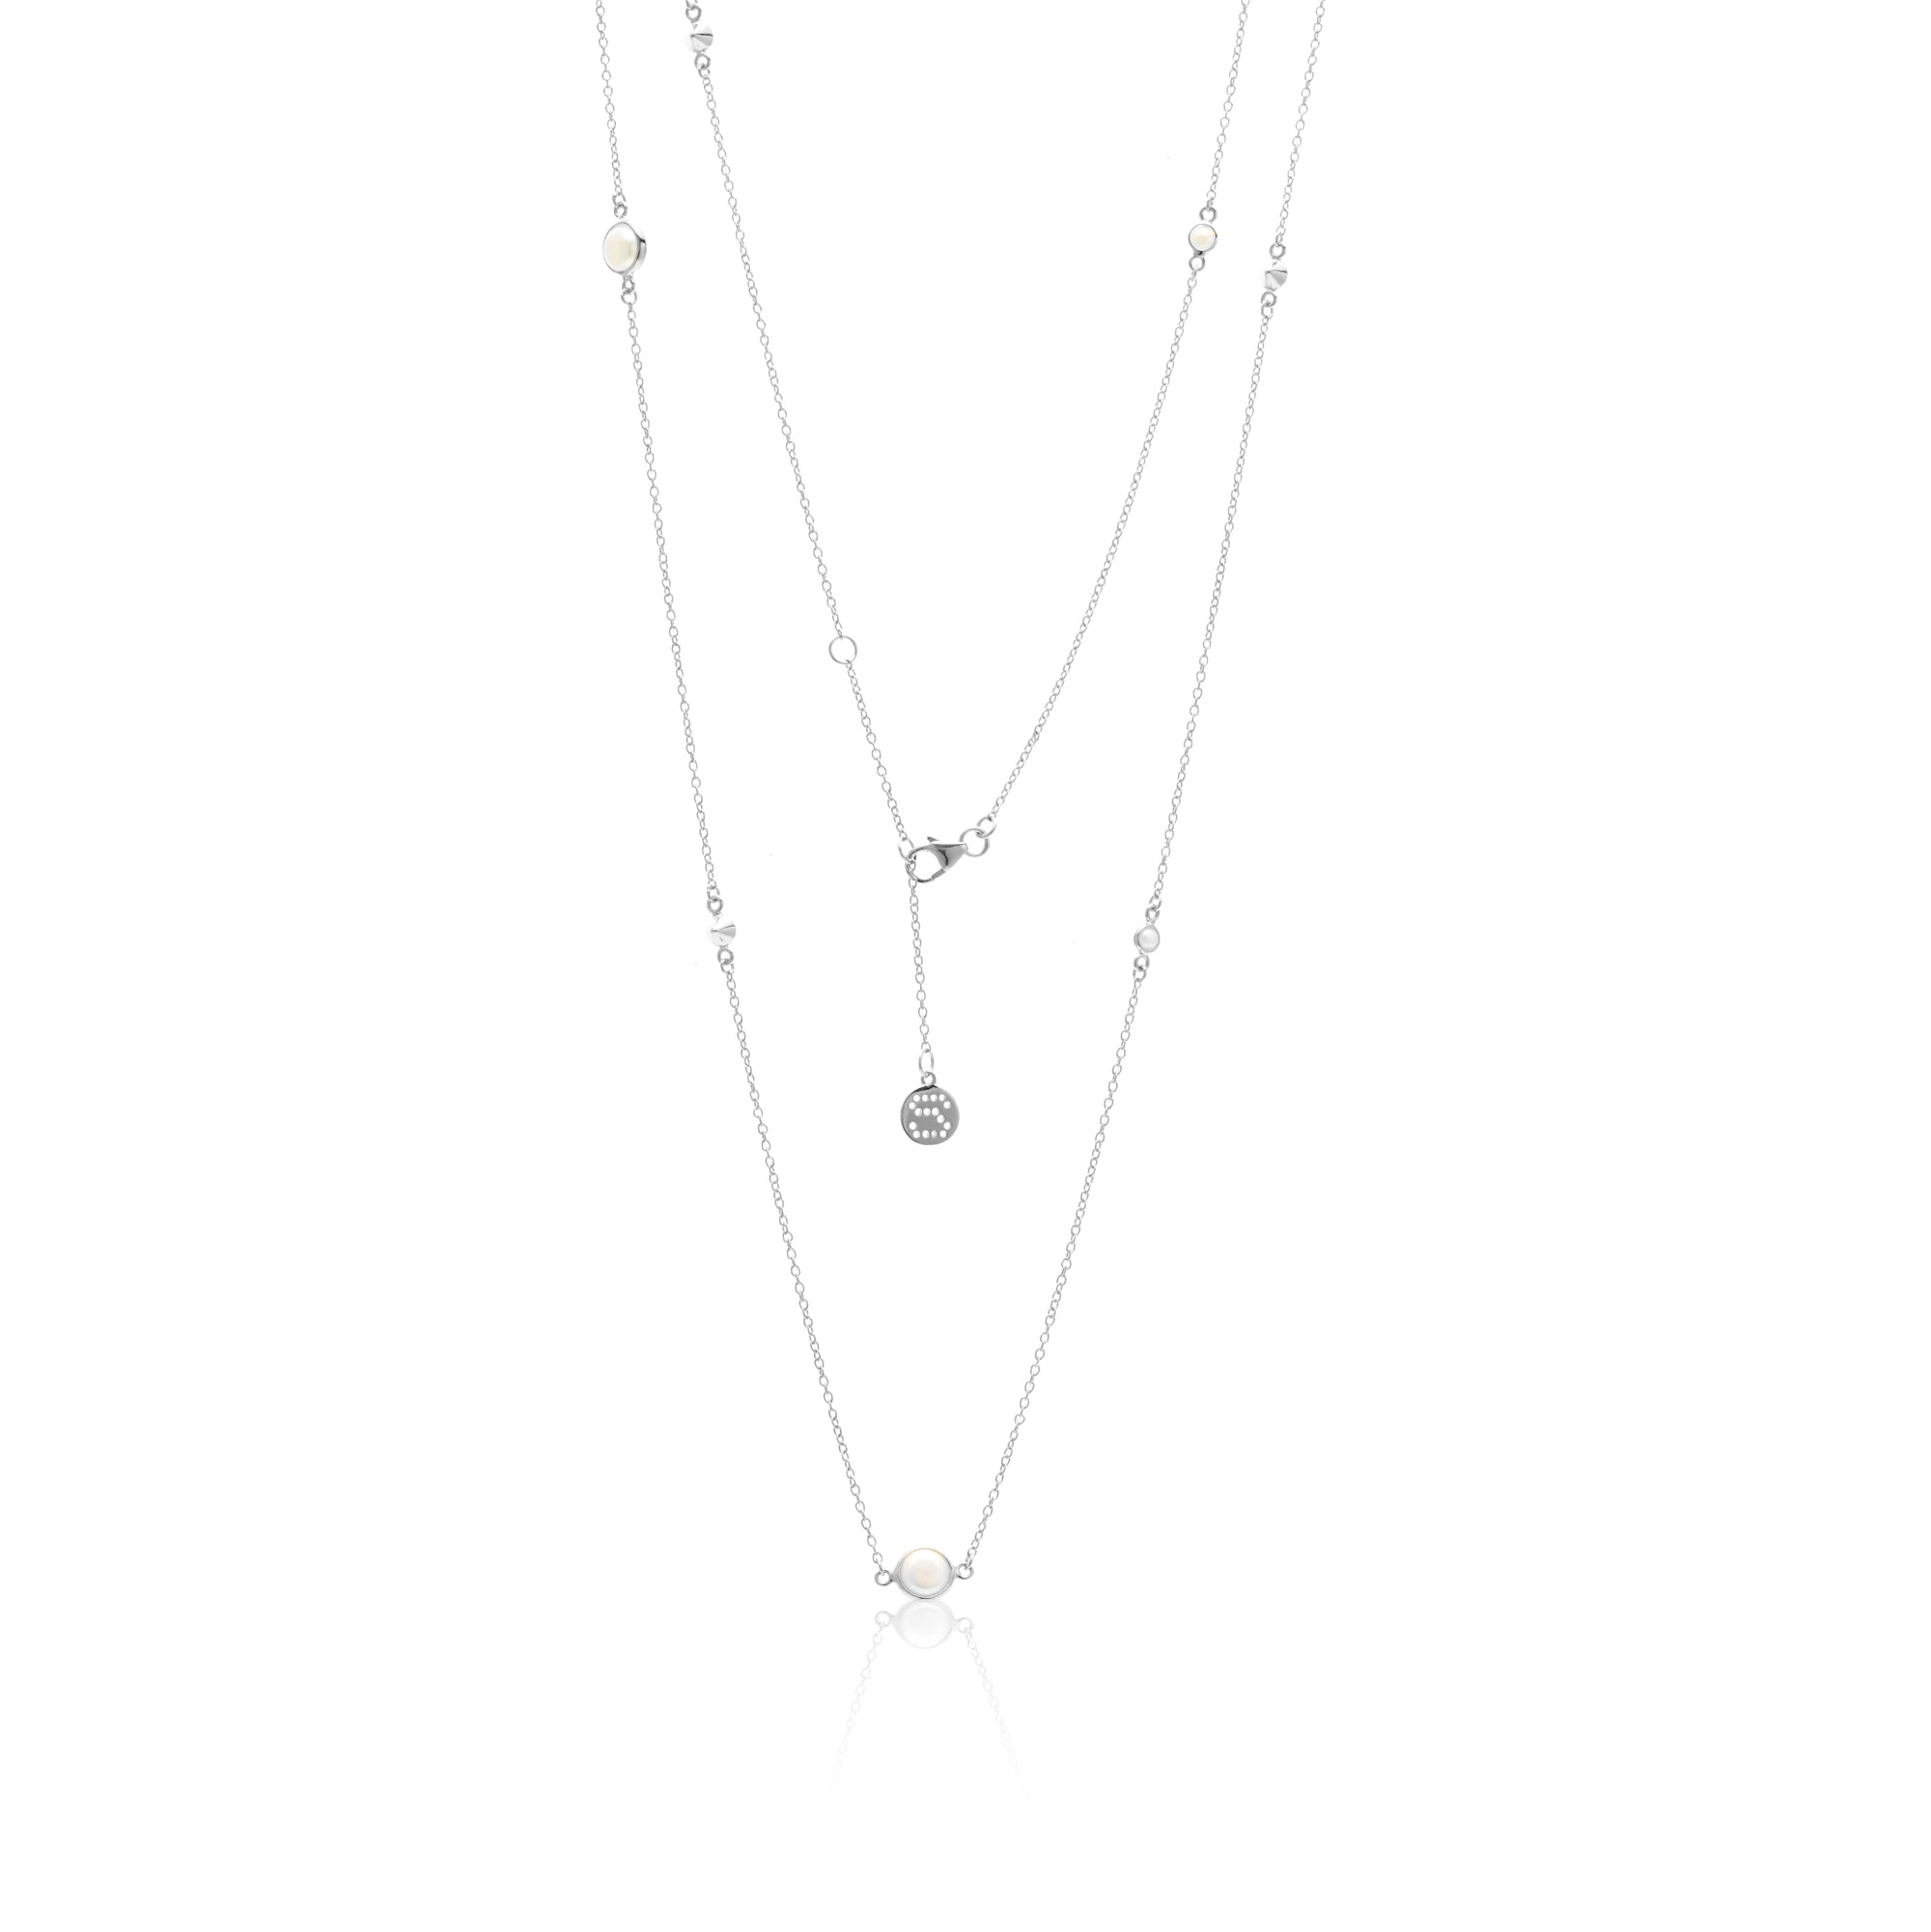 The Unexpected Long / Pearl + Silver / Necklace